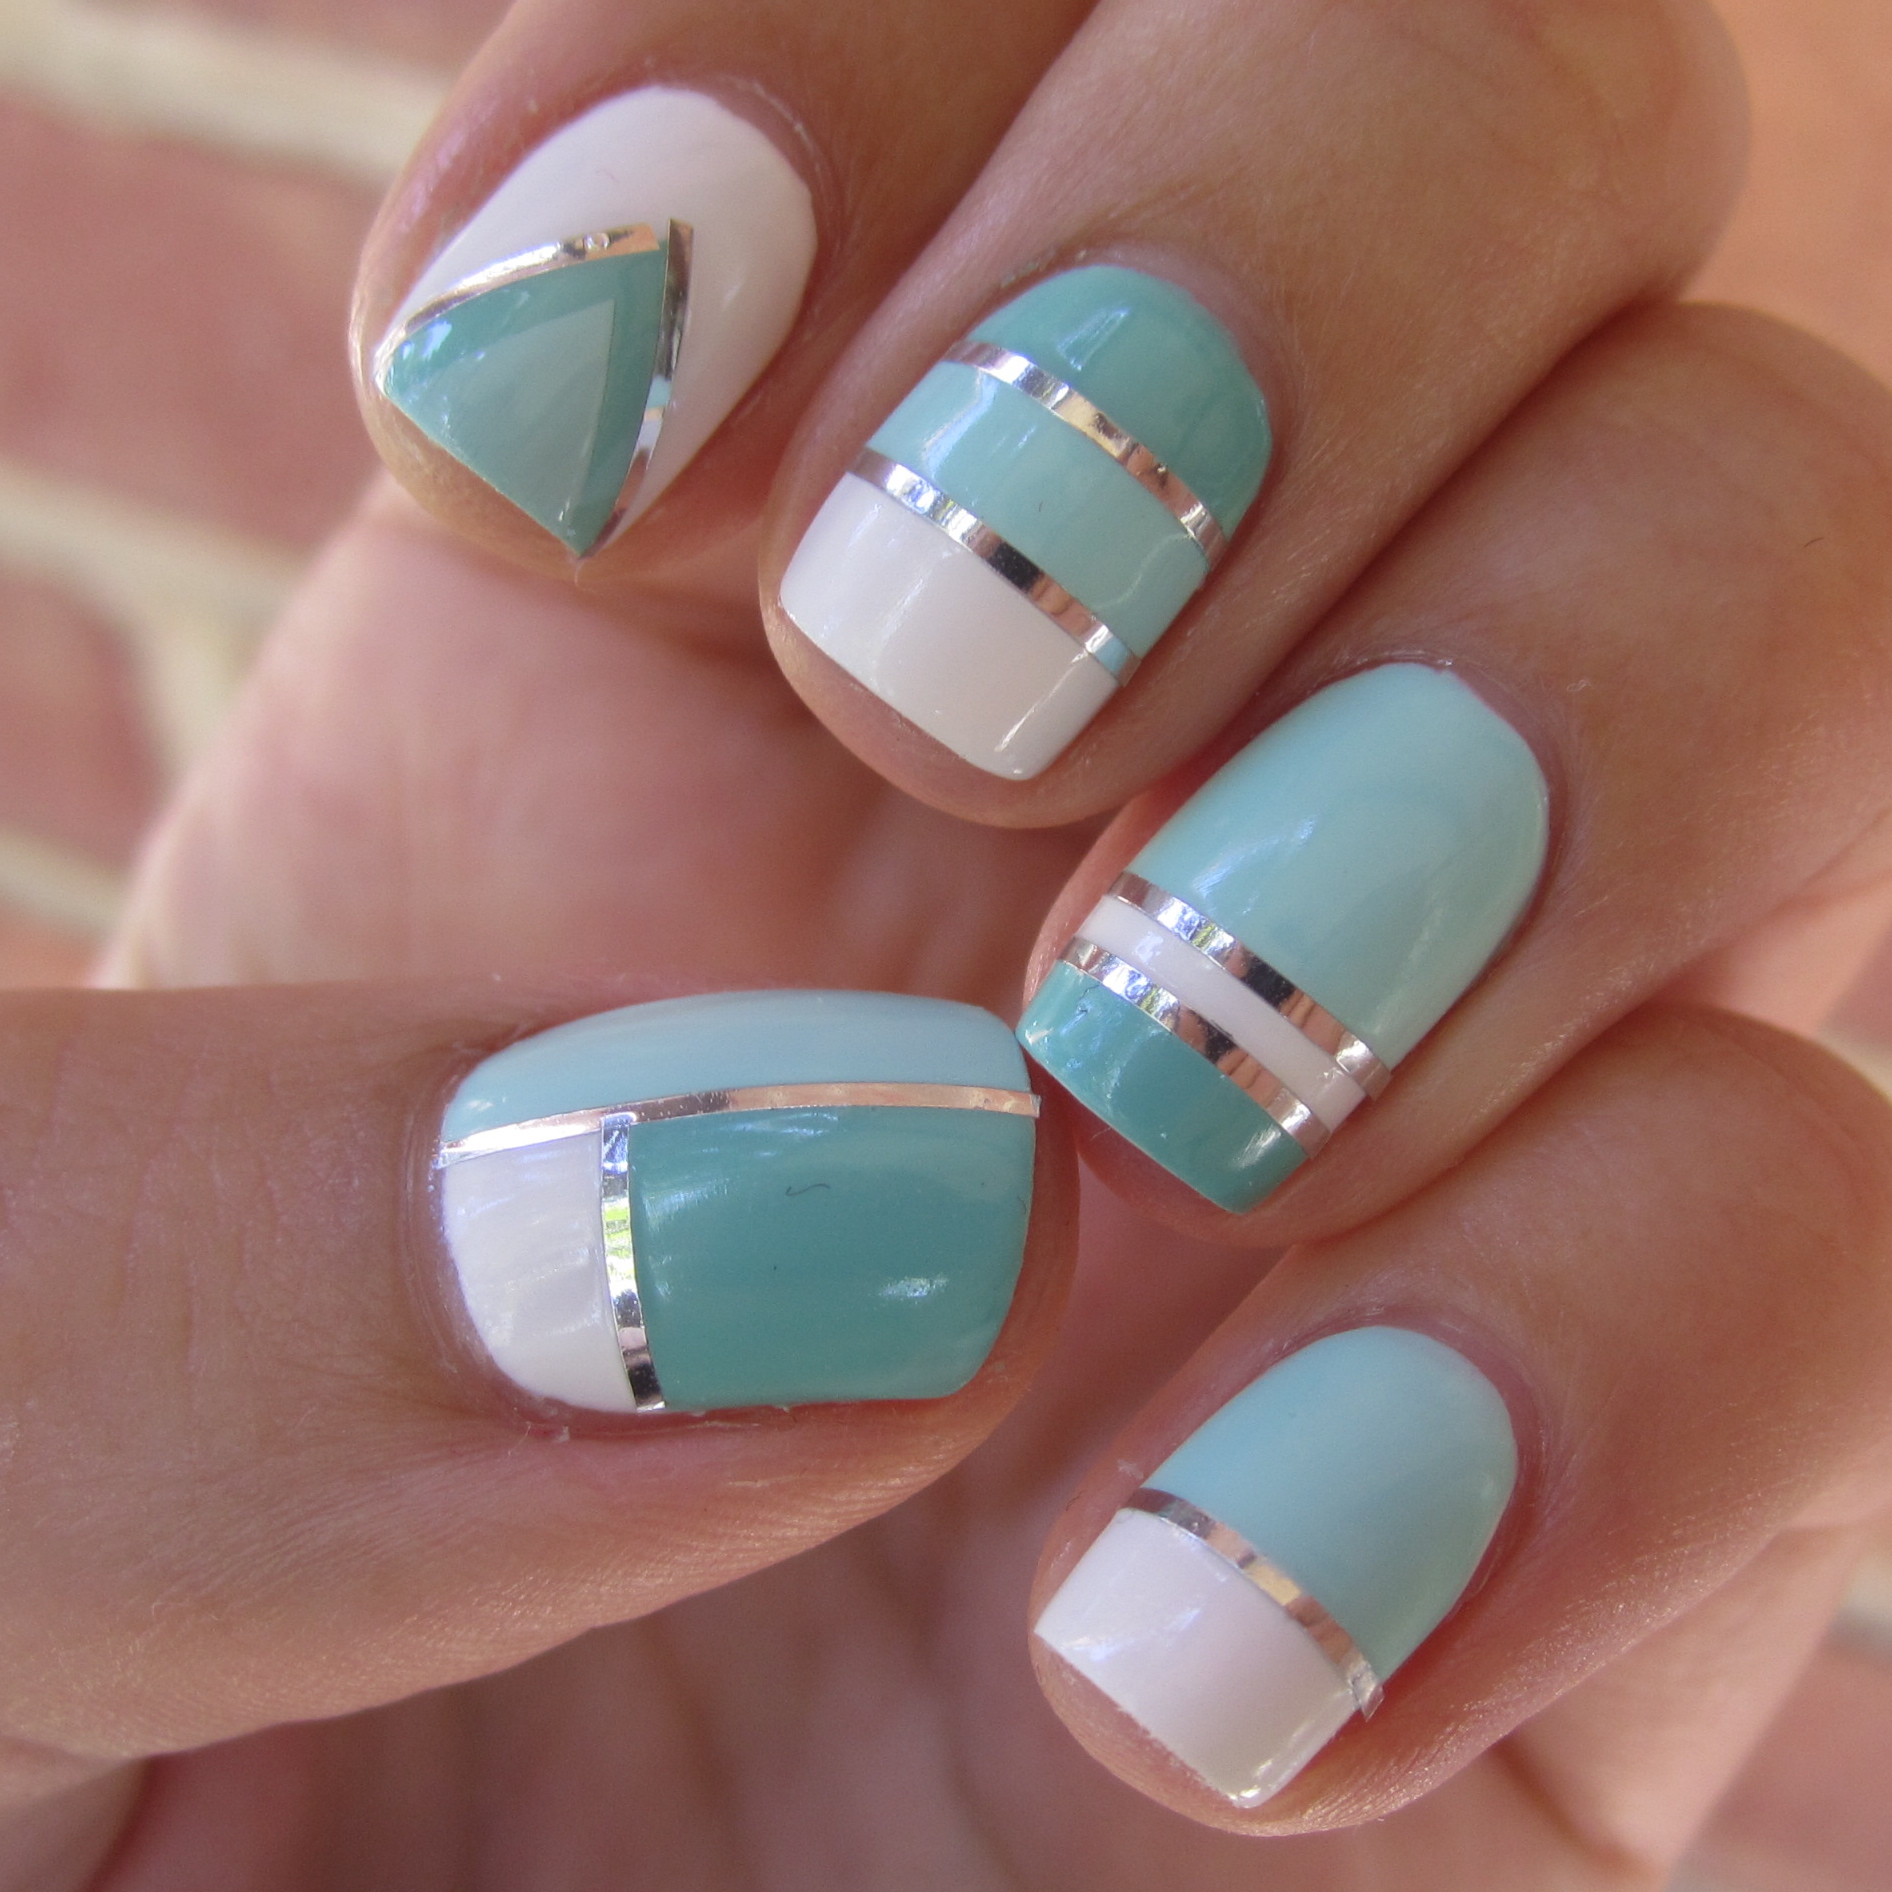 Nail art ideas for prom prom nail ideas 2014 nail art ideas for prom prom nail ideas prinsesfo Choice Image